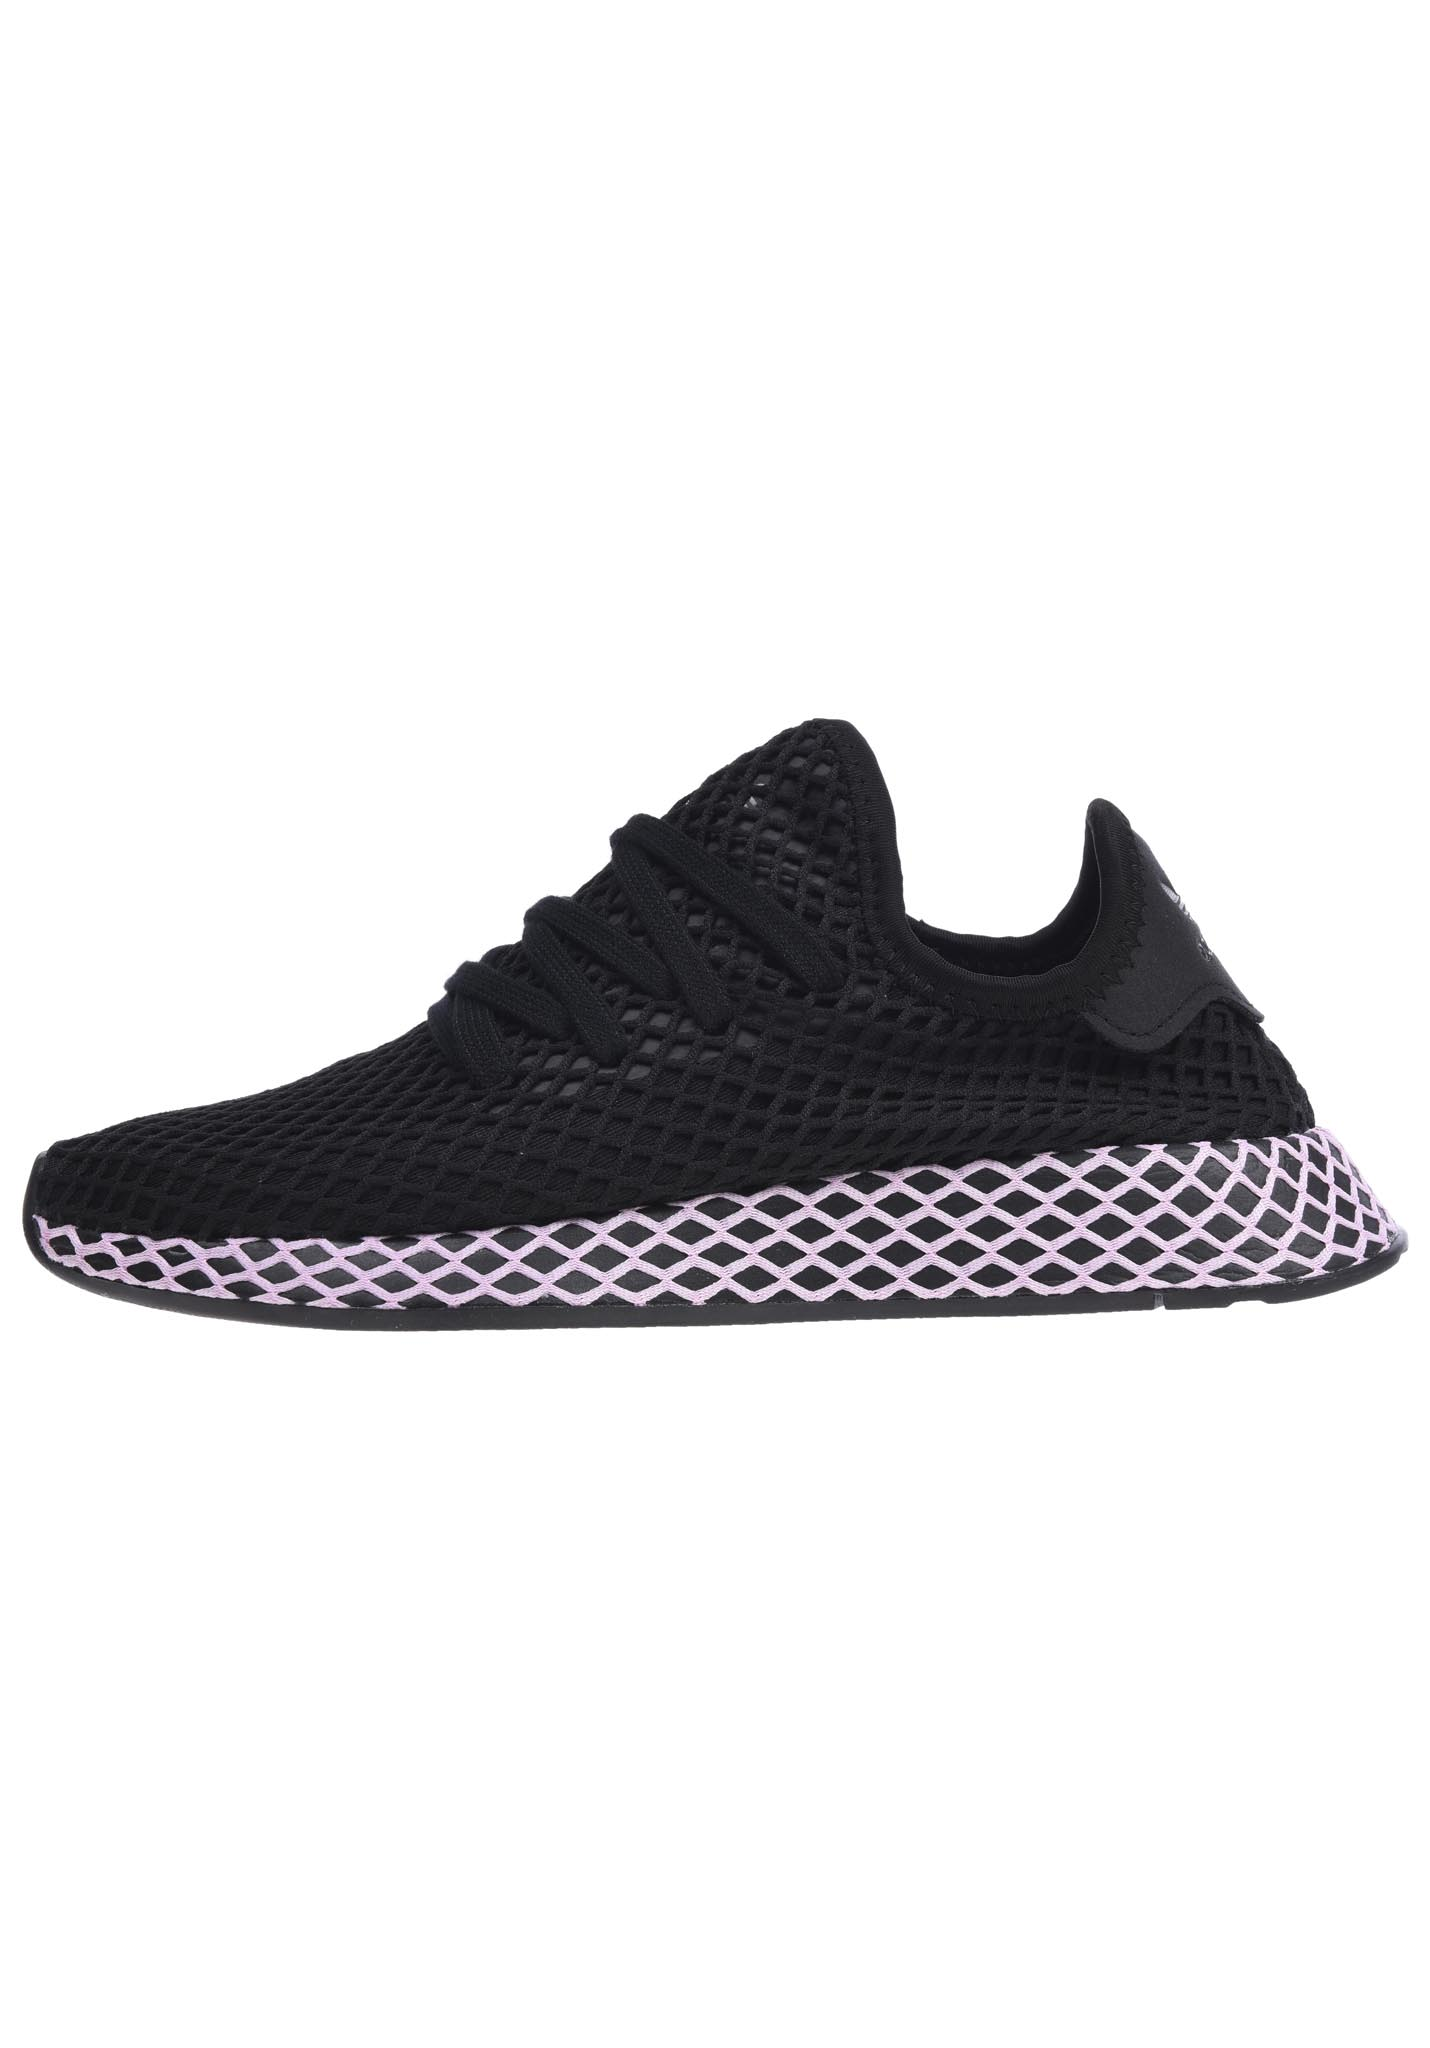 d70255bb0738e ADIDAS ORIGINALS Deerupt - Sneakers for Women - Black - Planet Sports